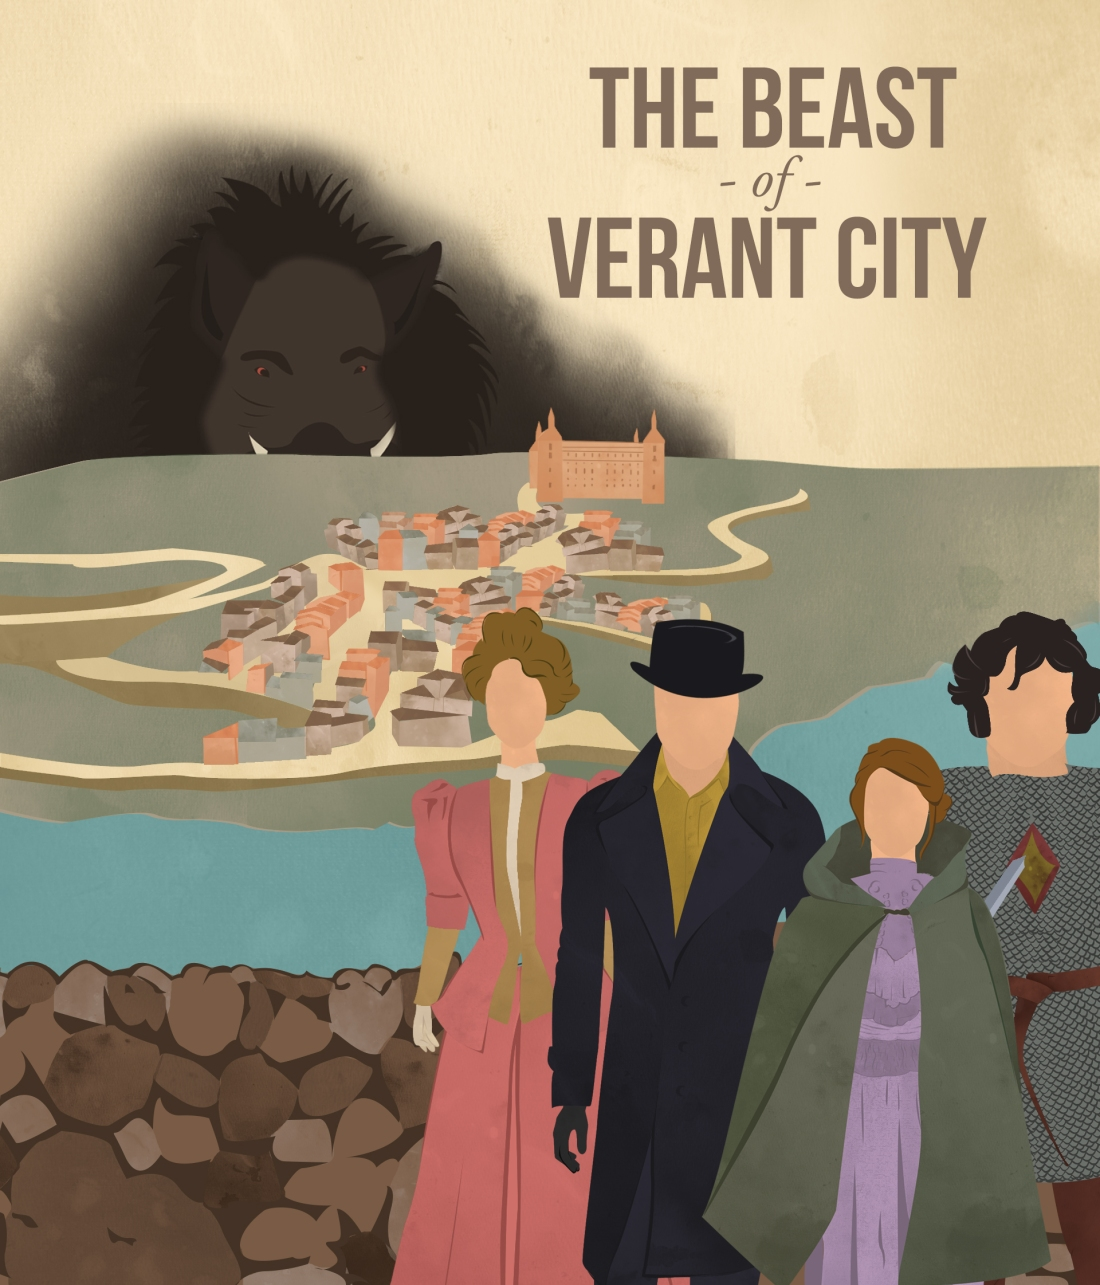 The Beast of Verant City - Poster